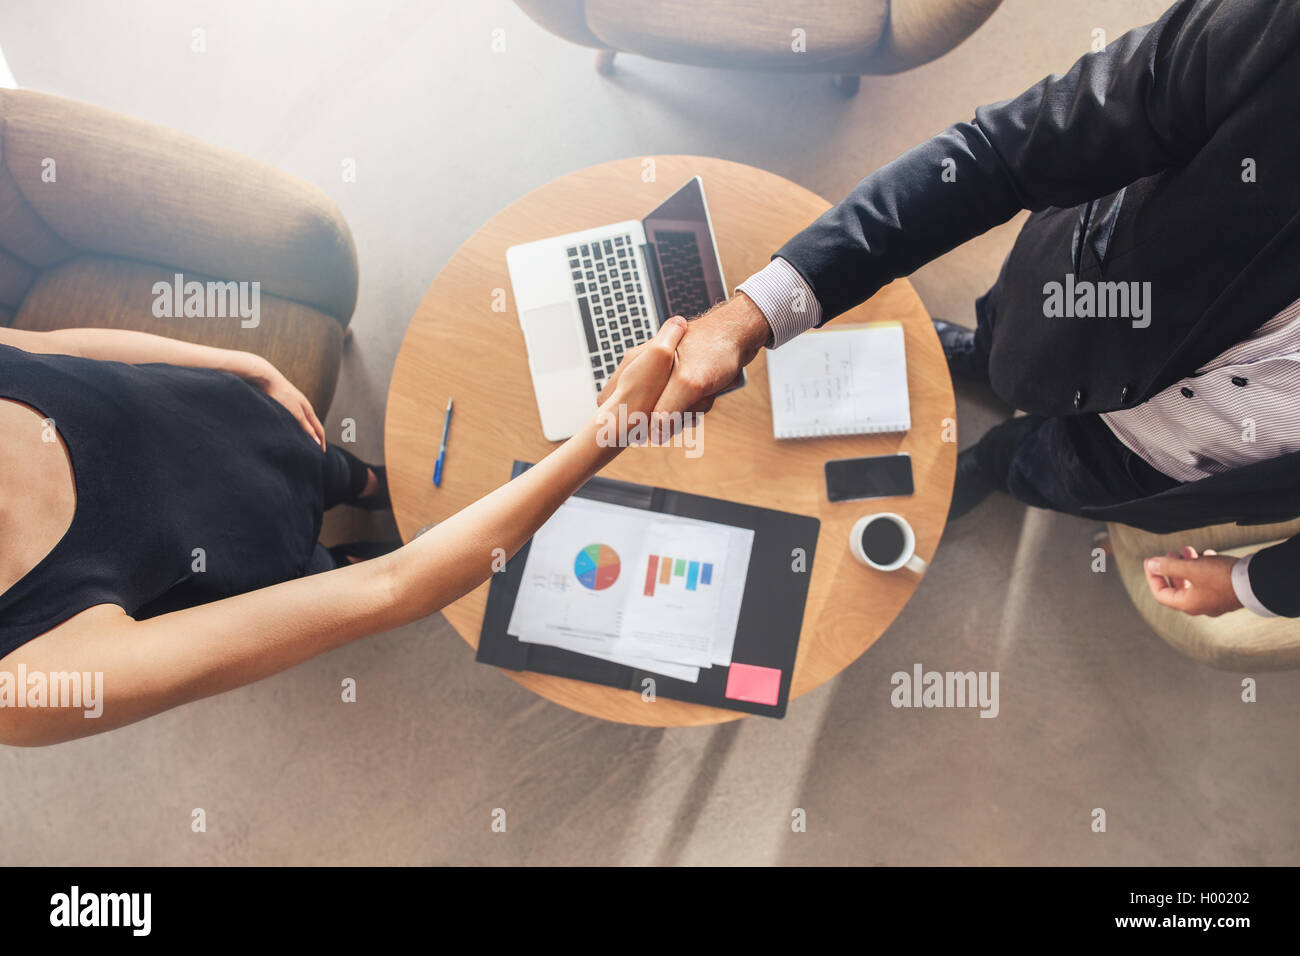 Business colleagues handshake. Businesspeople shaking hands after a successful meeting. - Stock Image